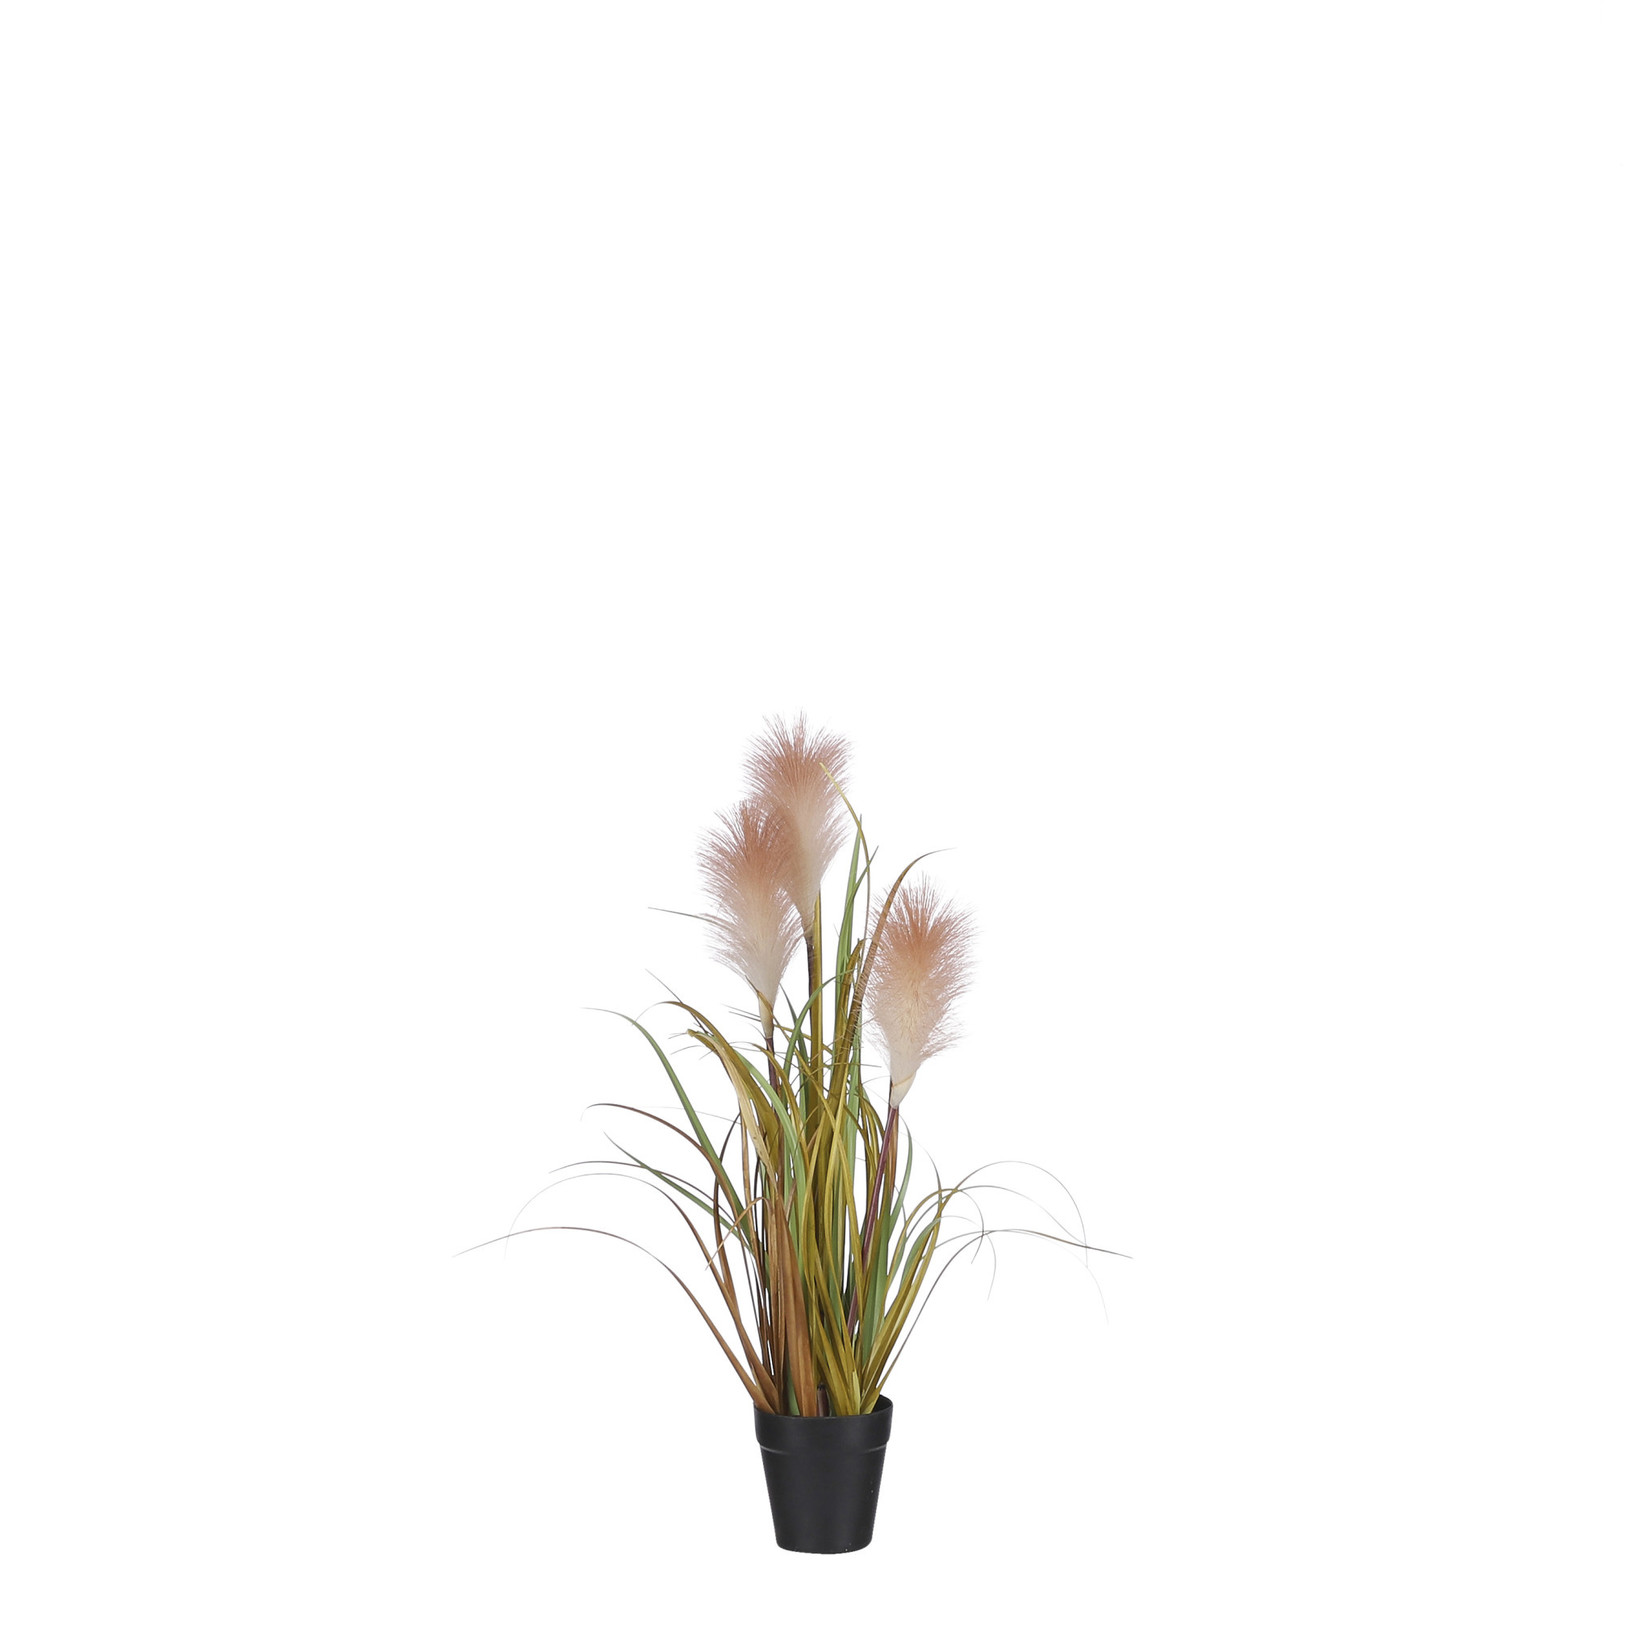 Brown Plume Grass in Pot